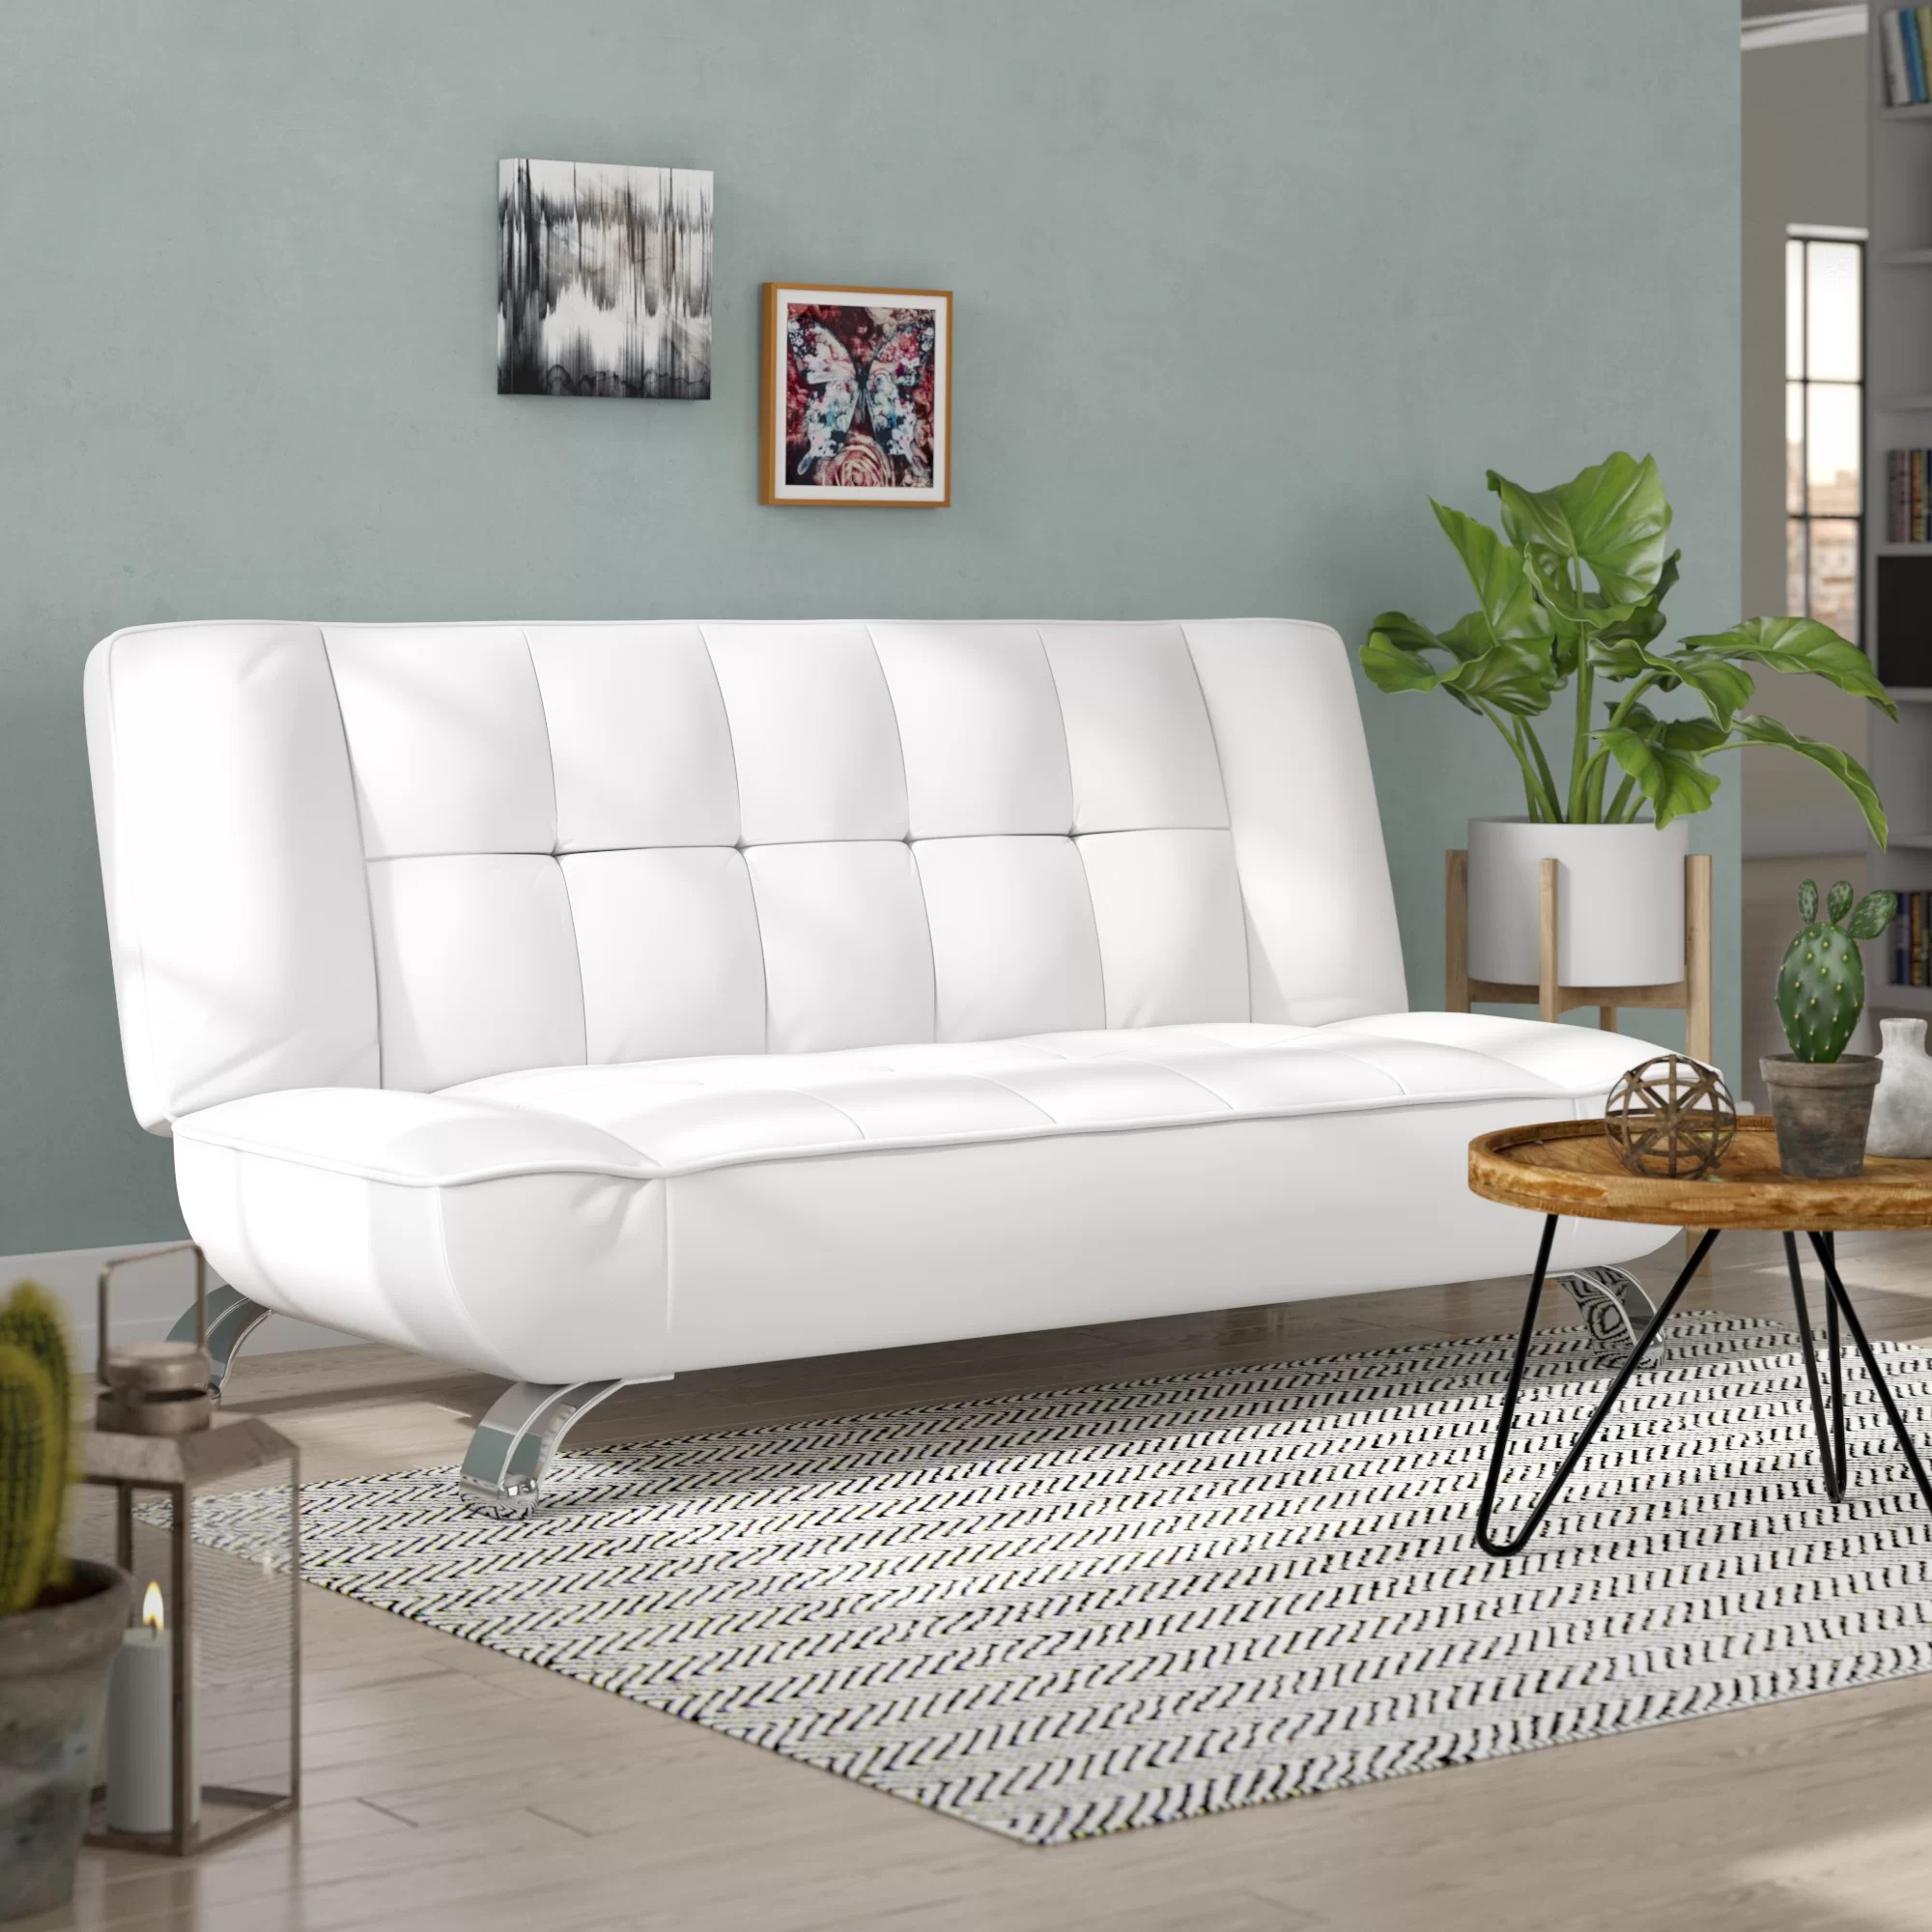 Table Clic Clac Barresi 3 Seater Clic Clac Sofa Bed